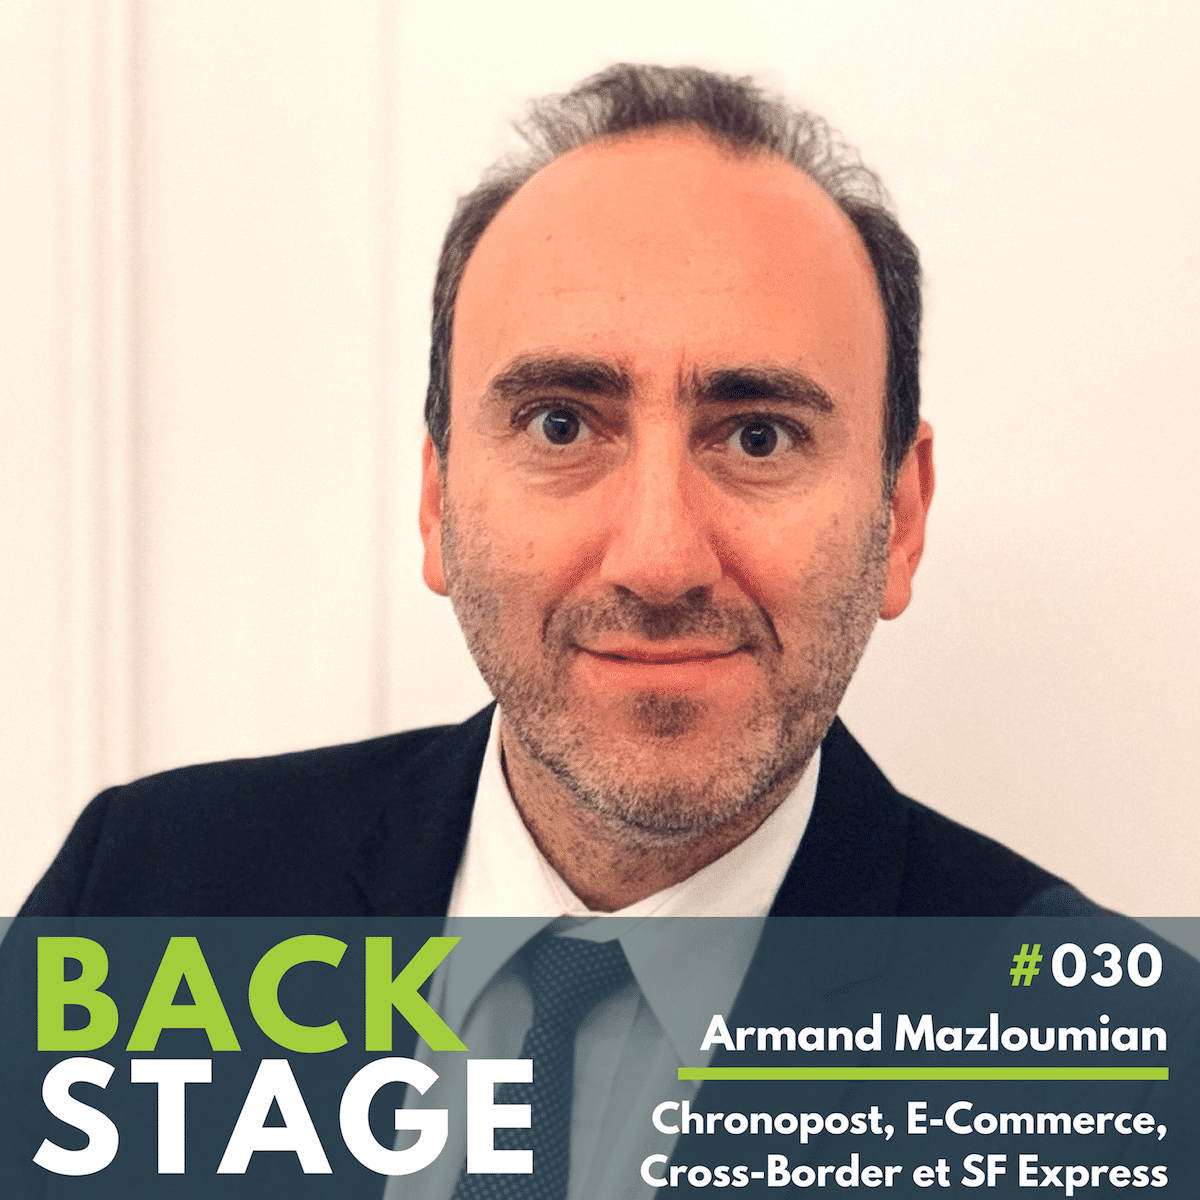 BACKSTAGE #030 - Armand Mazloumian, Chronopost, Ecommerce, Cross-Border and SF Express